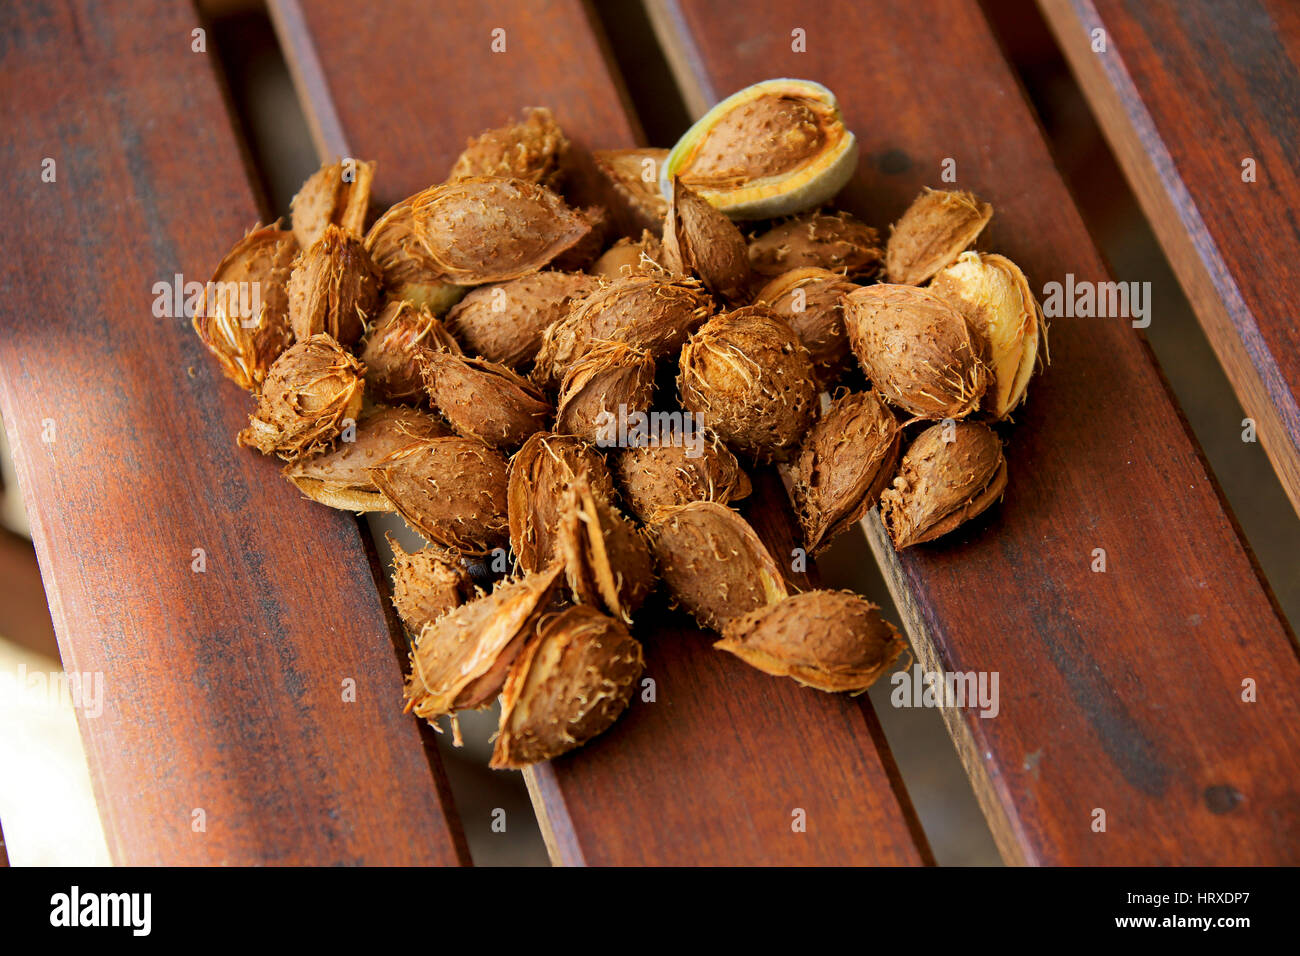 Homegrown Almonds 2 - Stock Image